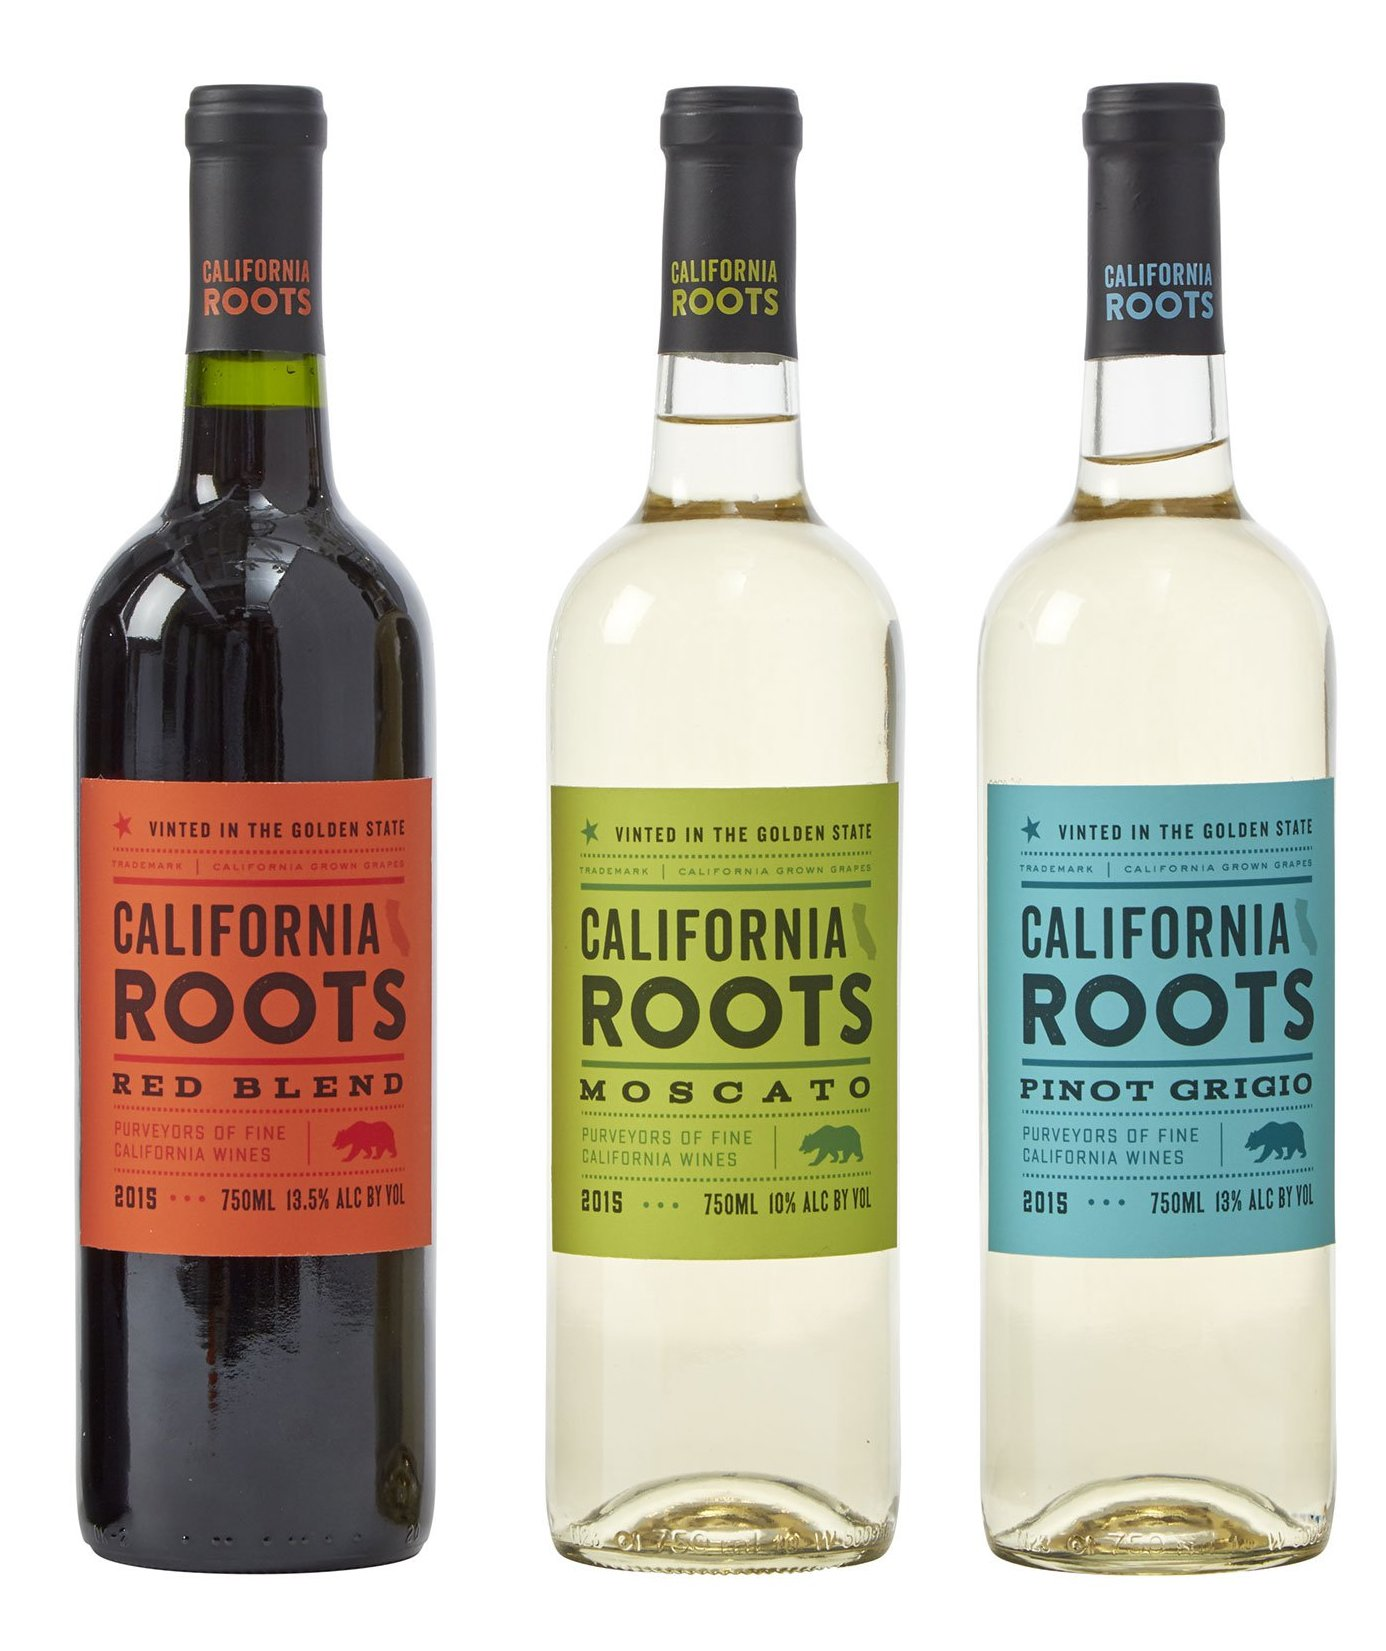 EC: Target Introduces Line of $5 Wines